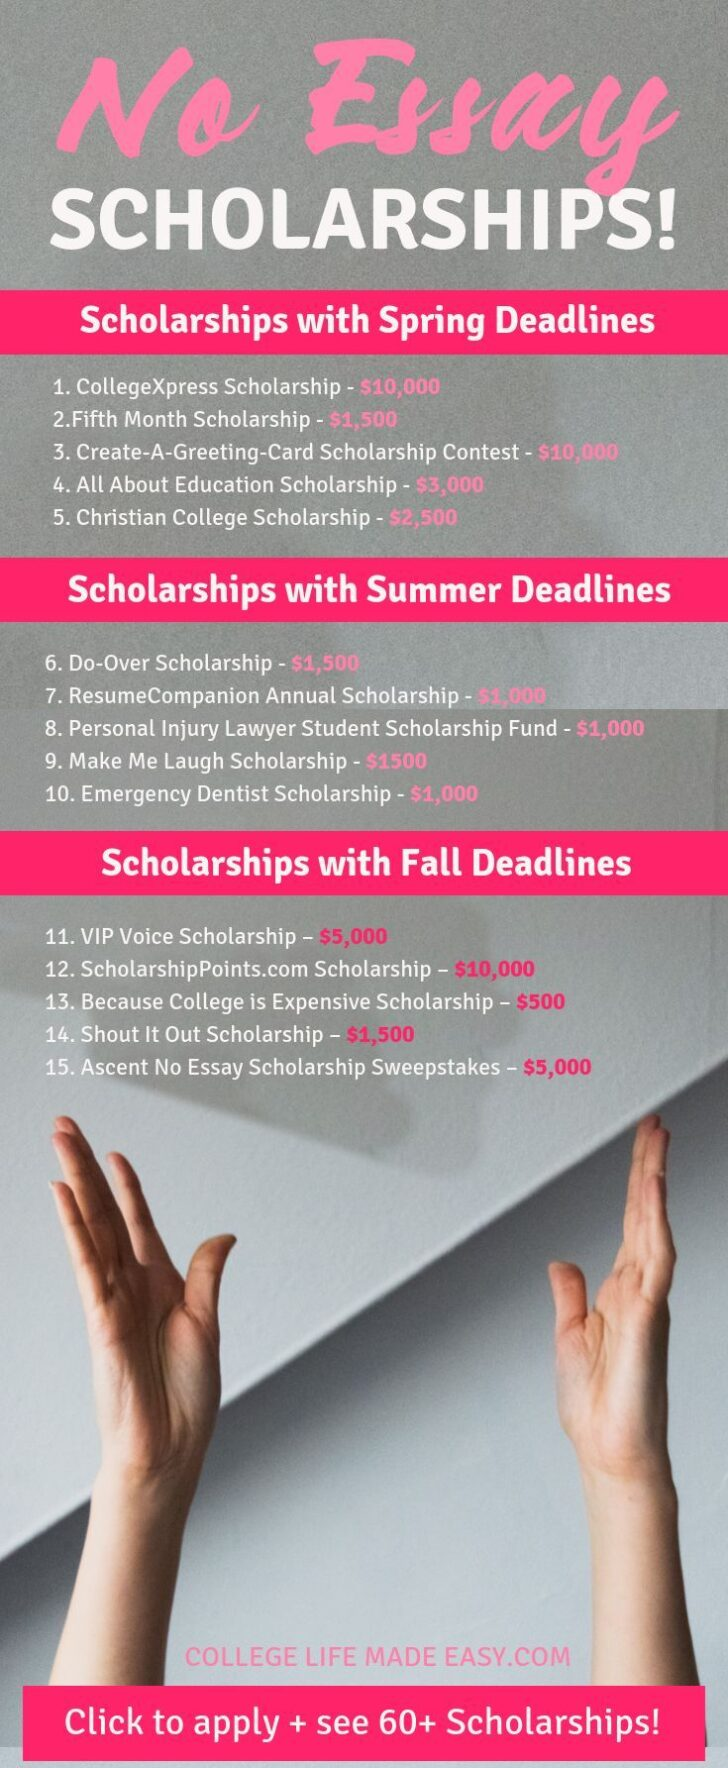 What Is The No Essay Scholarship